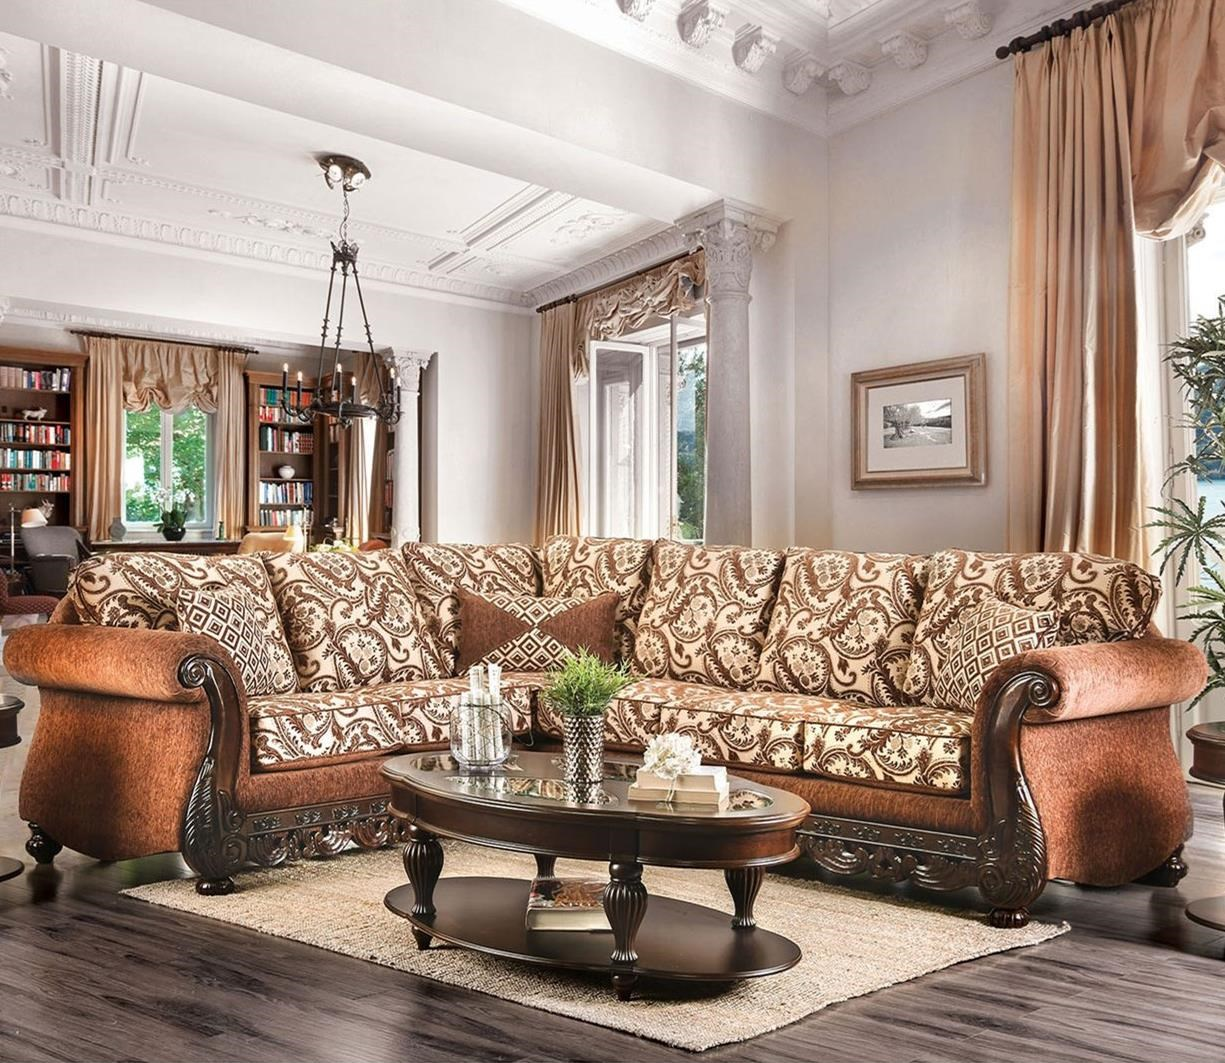 America cassandra traditional two tone sectional sofa with ornate carved wood trim